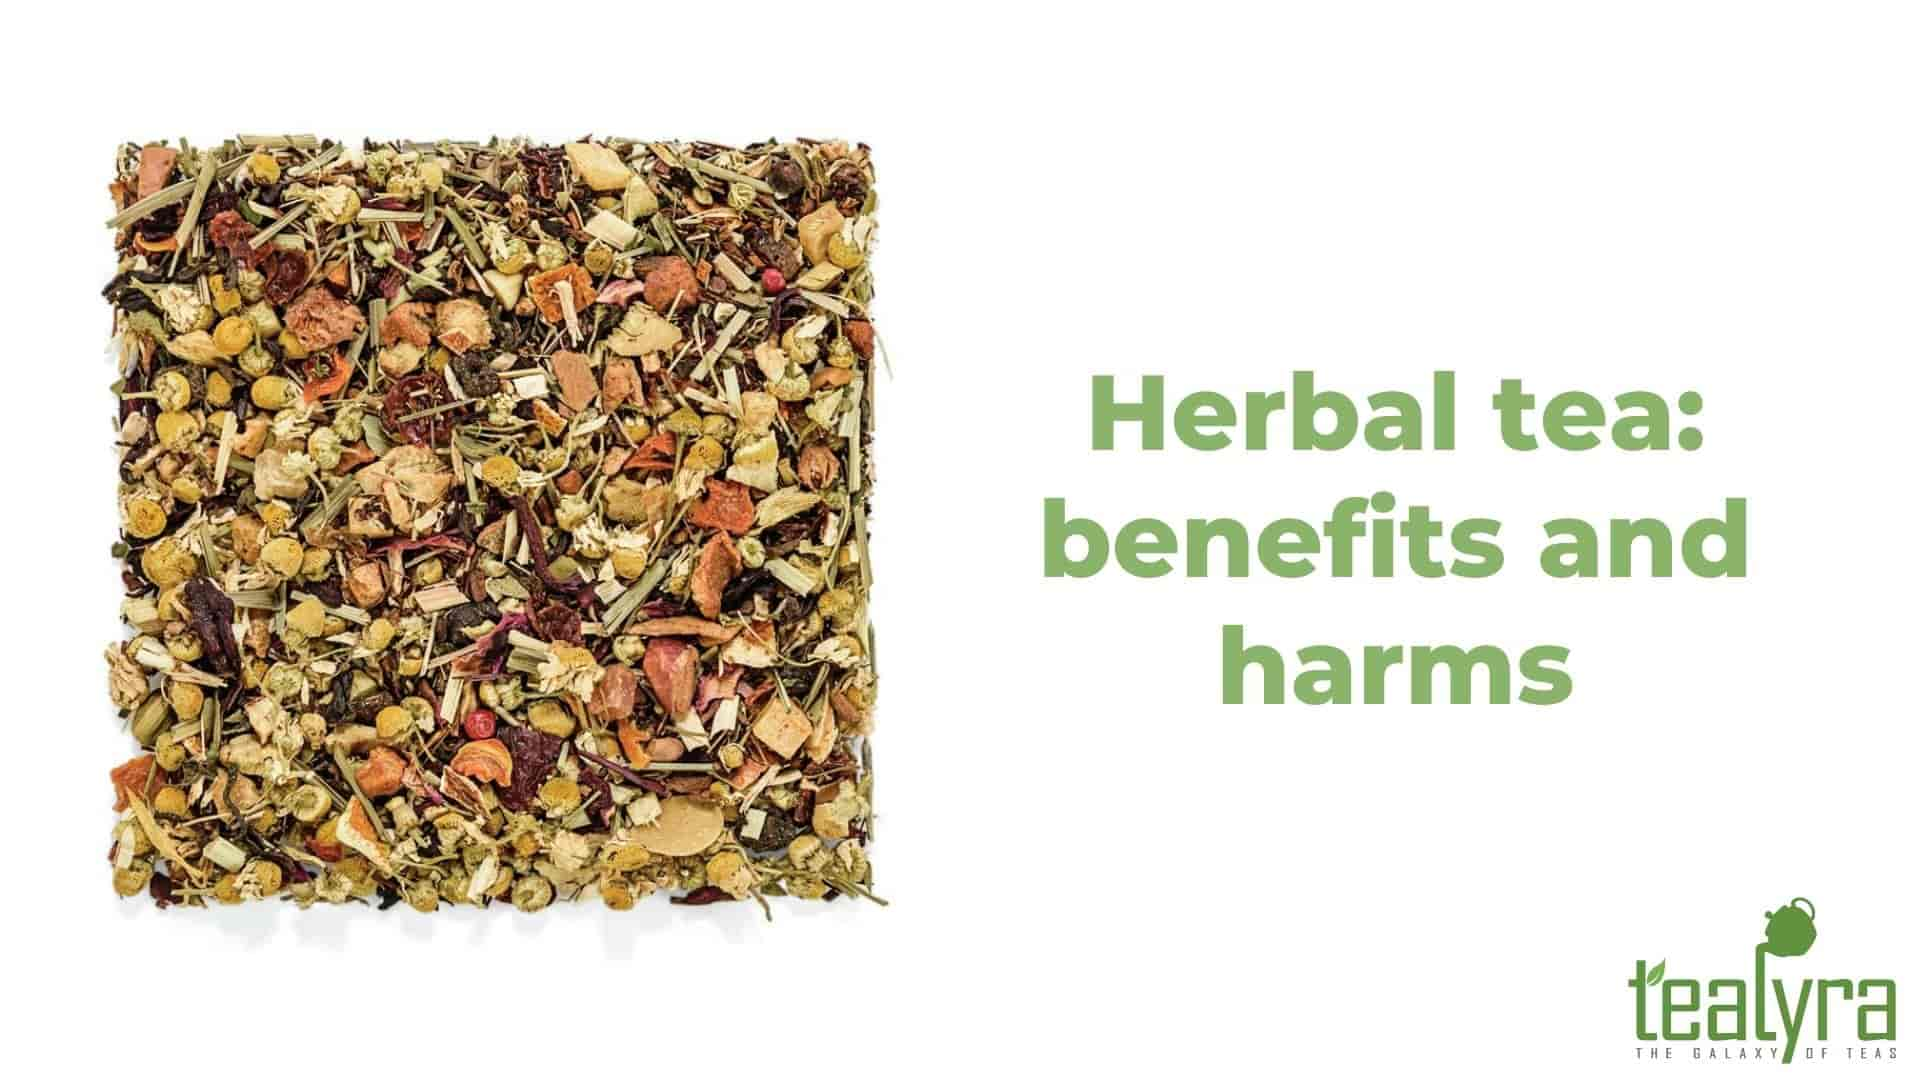 image-Herbal-tea